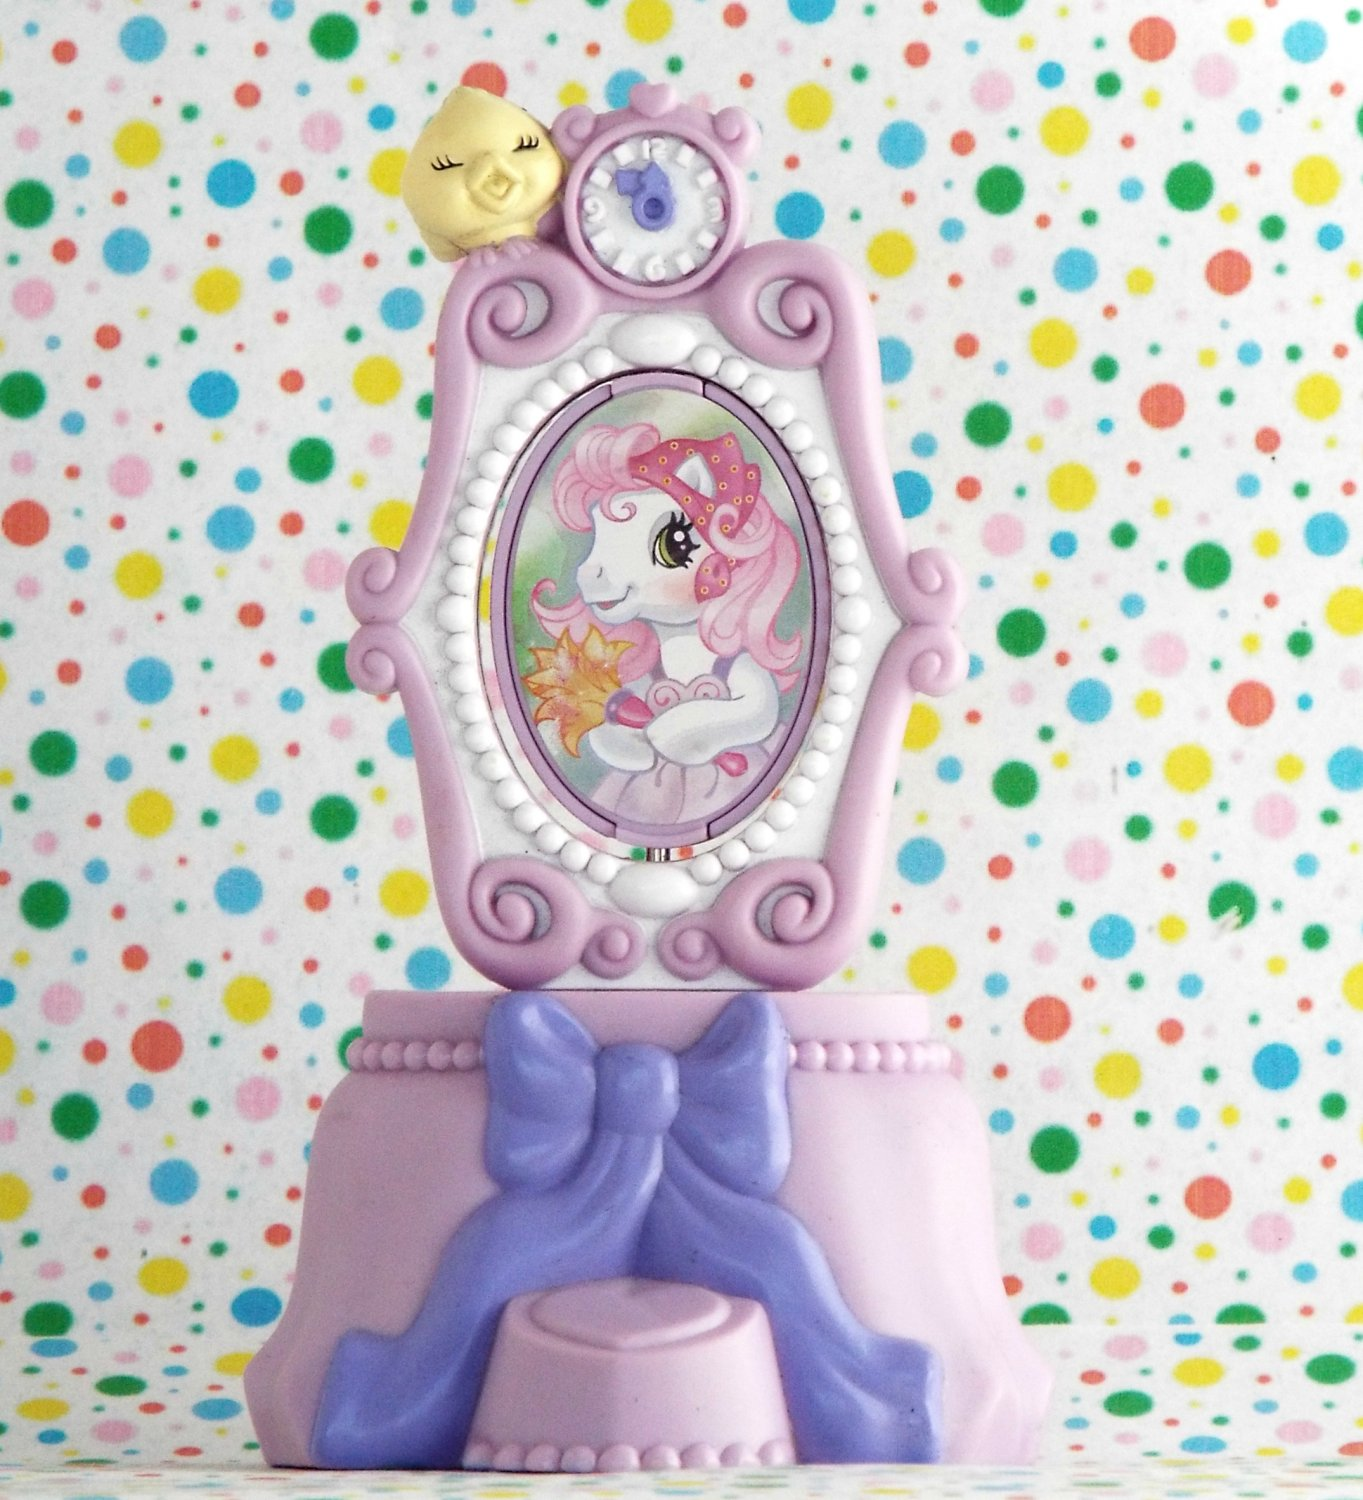 My Little Pony Crystal Slipper Princess Vanity Part